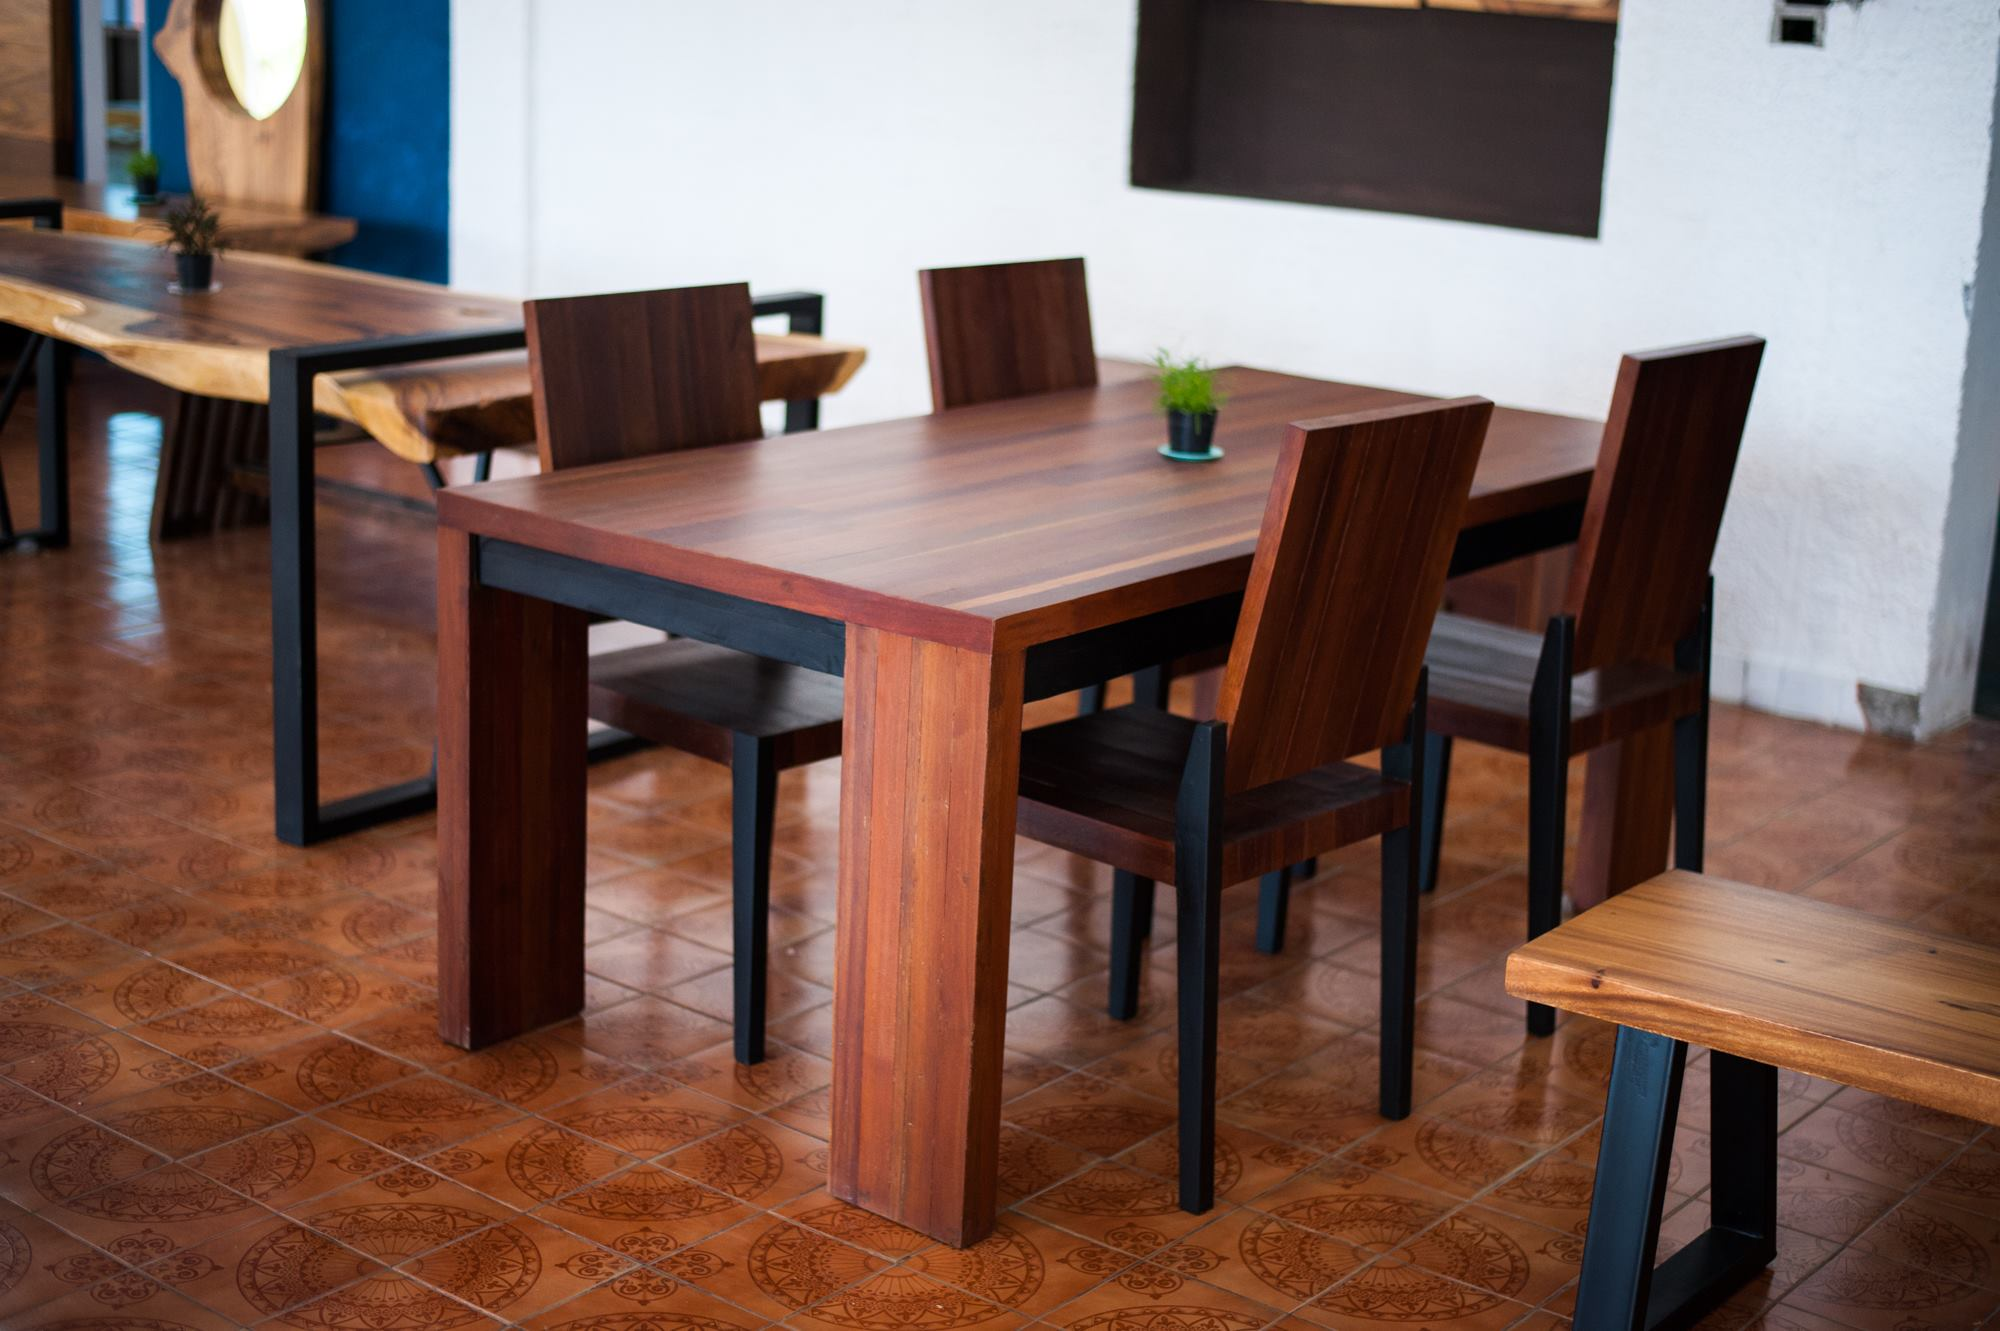 Set suar wood dining table and chairs